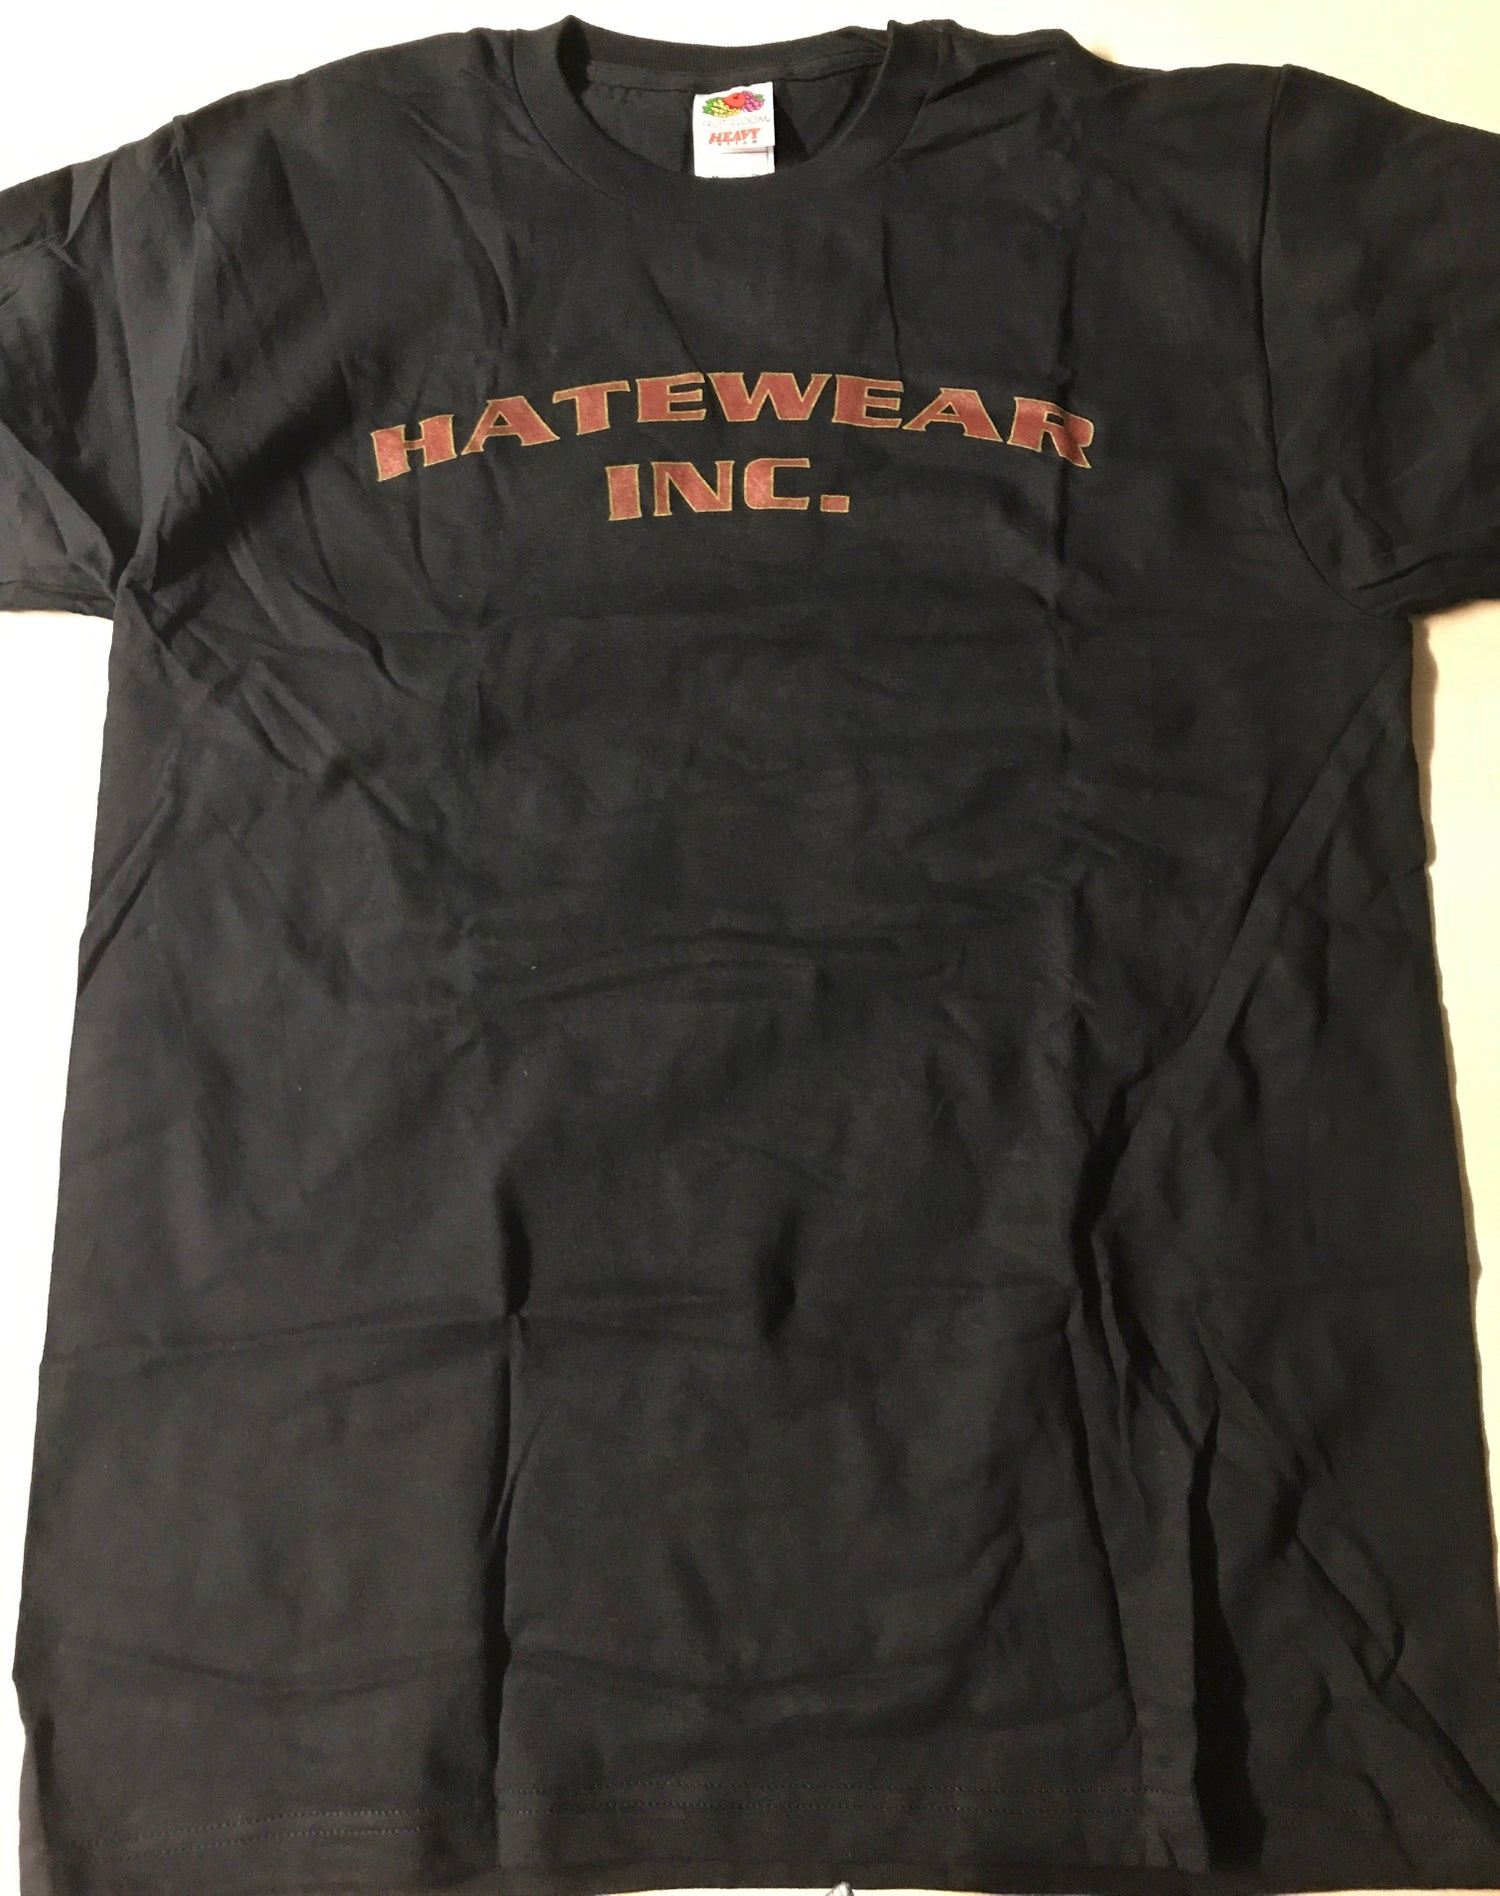 Image of HATEWEAR/WITH HONOR/ICEPICK $3 SHIRT CLEARANCE SALE